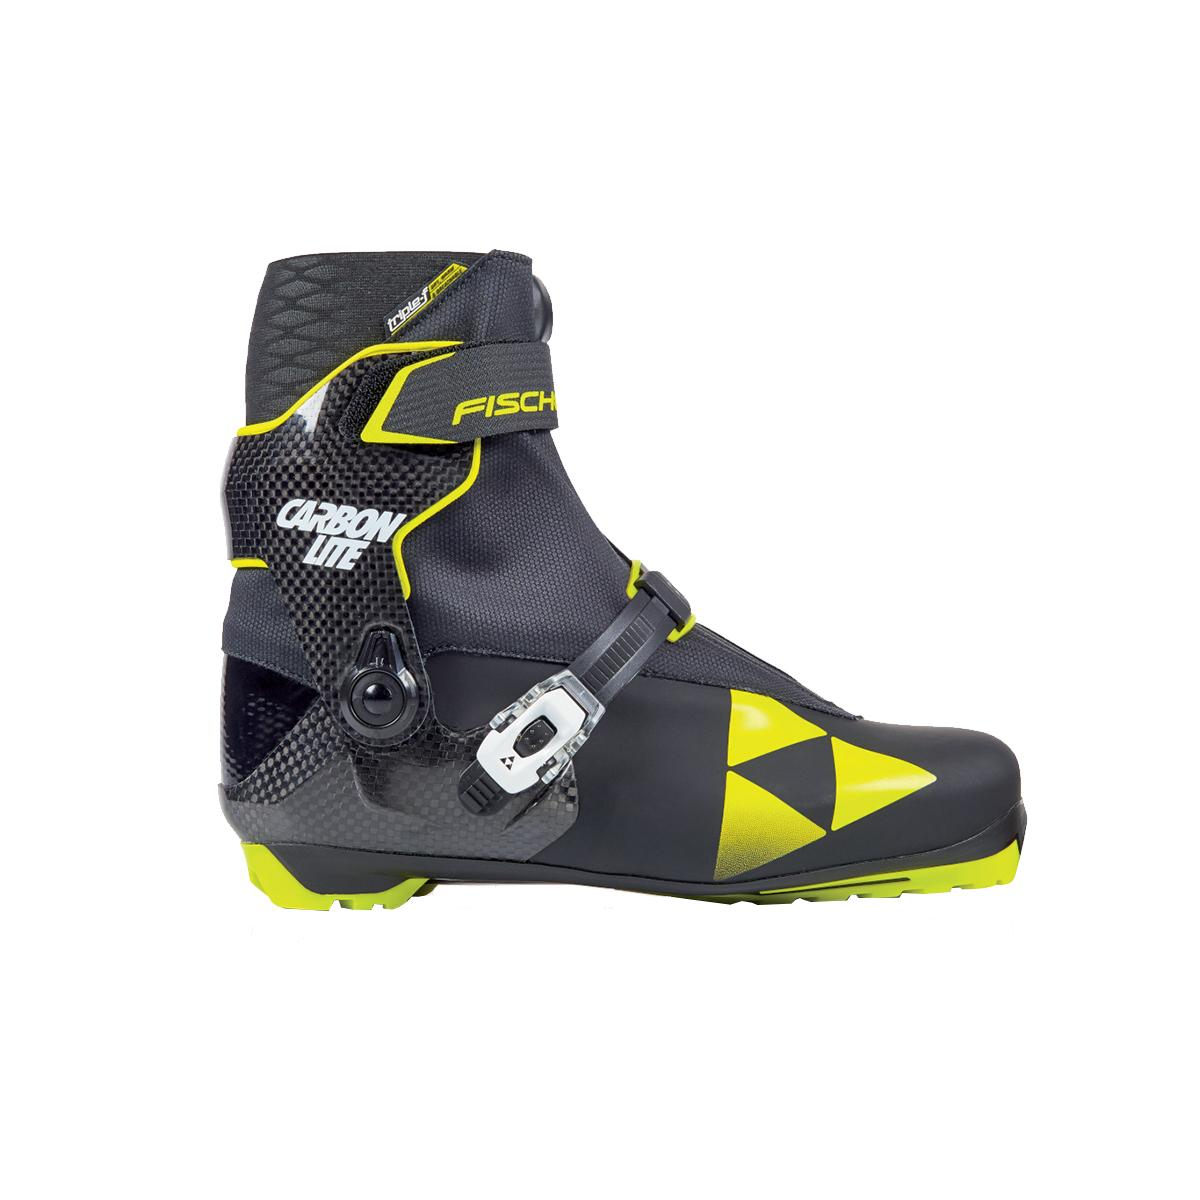 Fischer Men's RCS Carbonlite Skating Boot in Black and Yellow